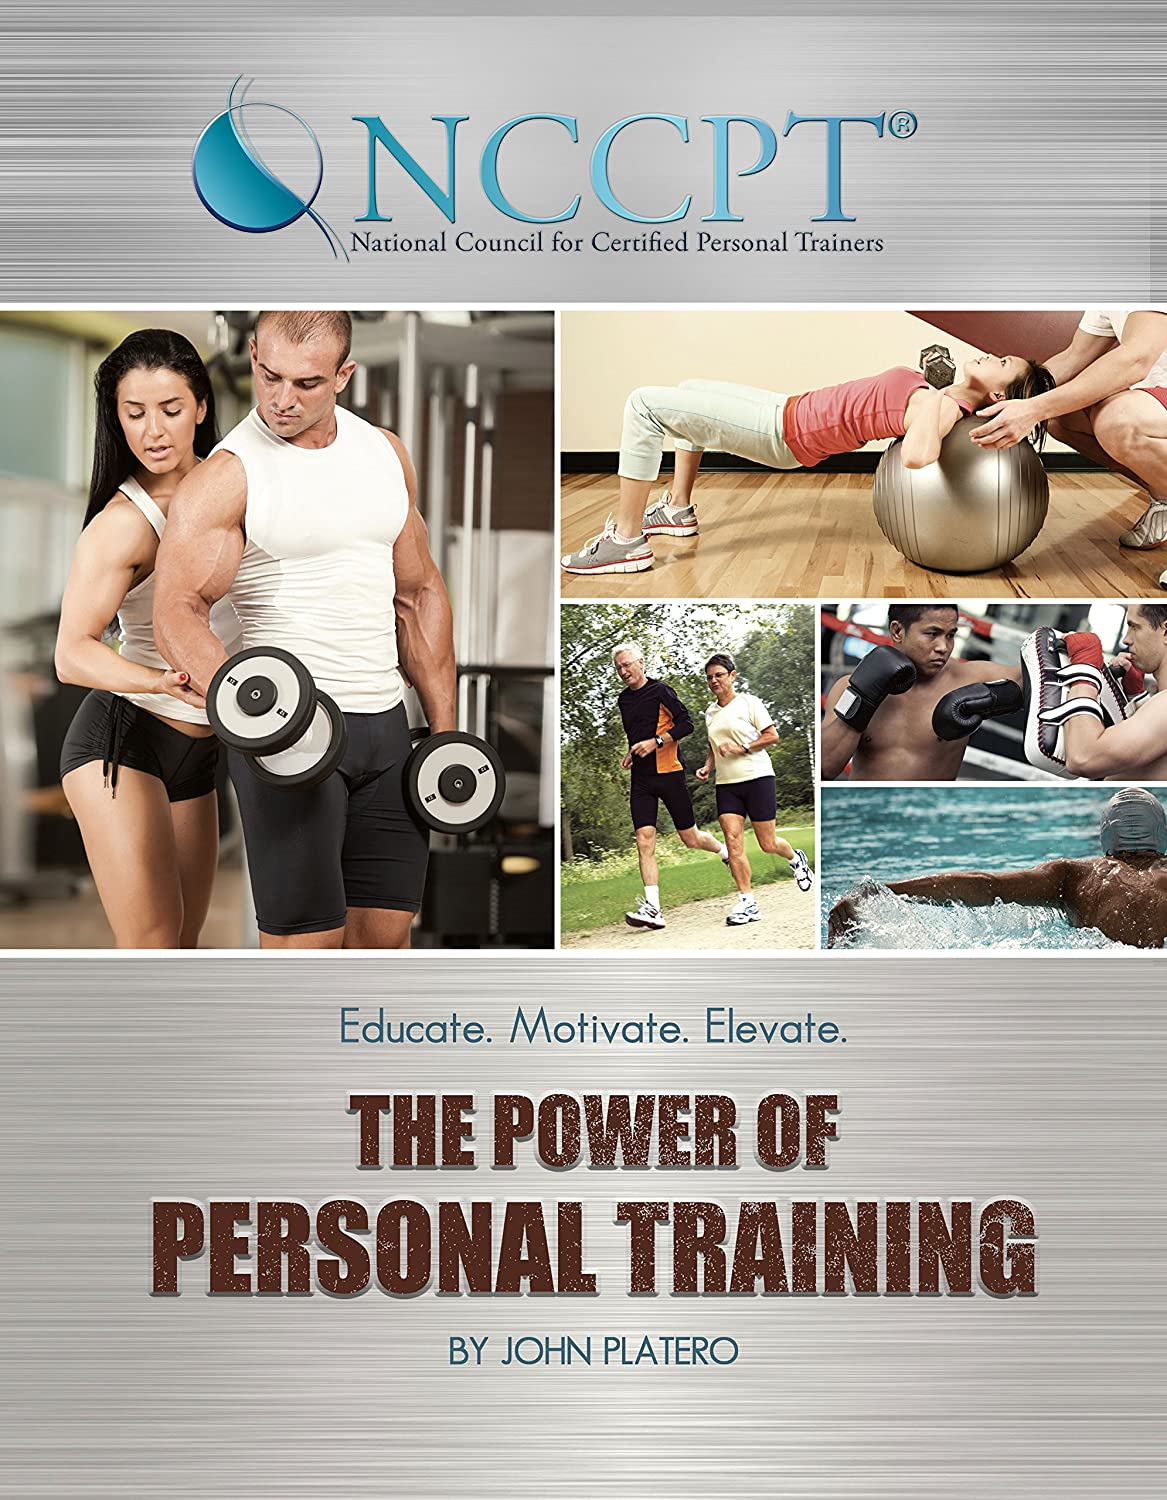 Amazon.com: The Power of Personal Training: NCCPT Personal Training  Certification Manual: Sports & Outdoors